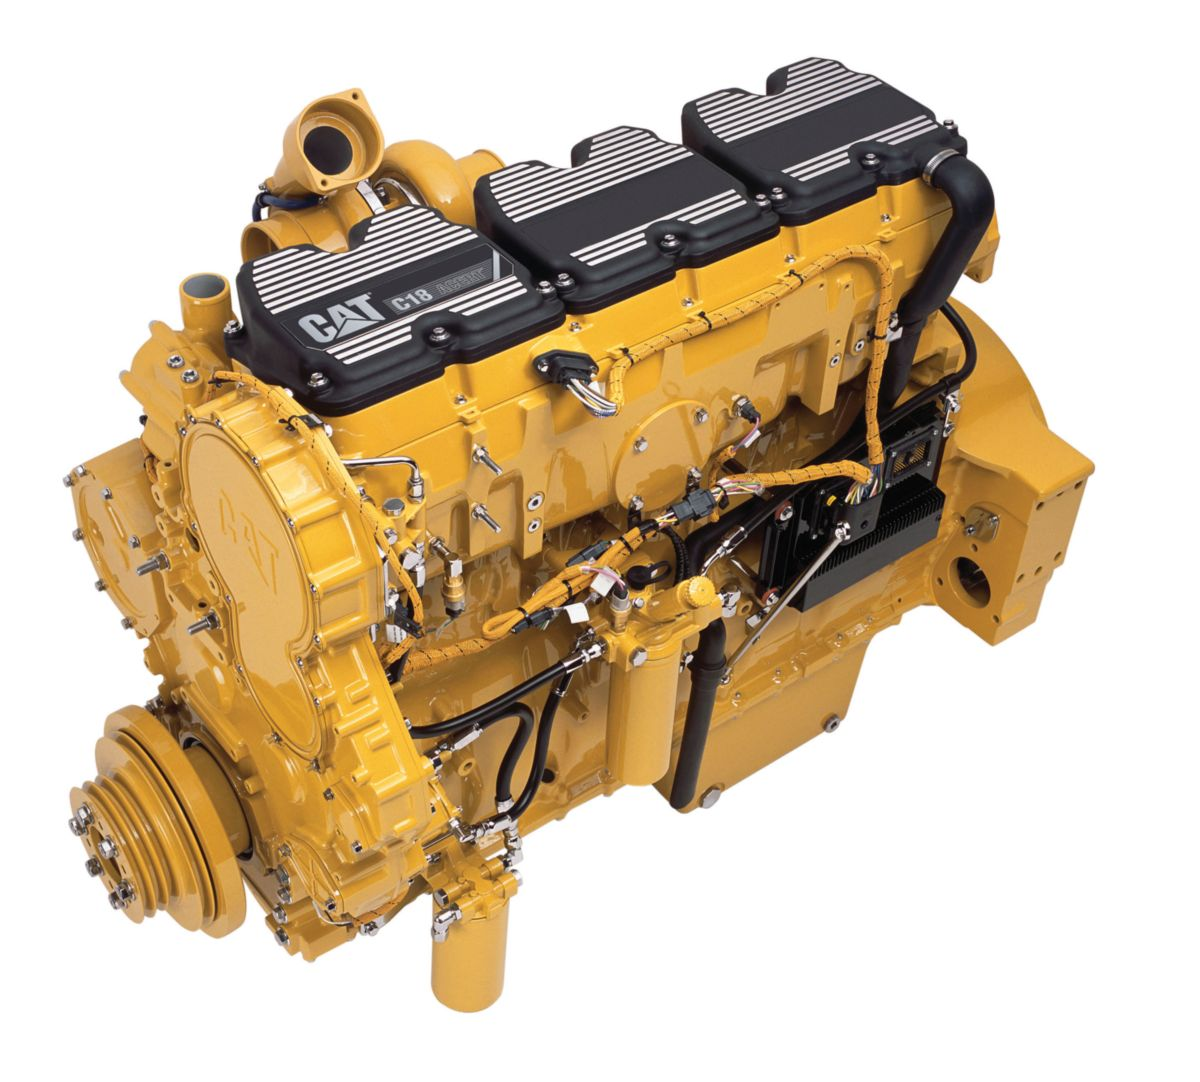 caterpillar c15 engine diagram with 637g Wheel Tractor Scraper 2 on Fuel Oil System moreover C15 Cat Block Heater Location likewise C7 Cat Engine Ipr Valve Location together with Cummins Engine Ecm Wiring Diagrams further 74824 1999 Freightliner Fld 120.